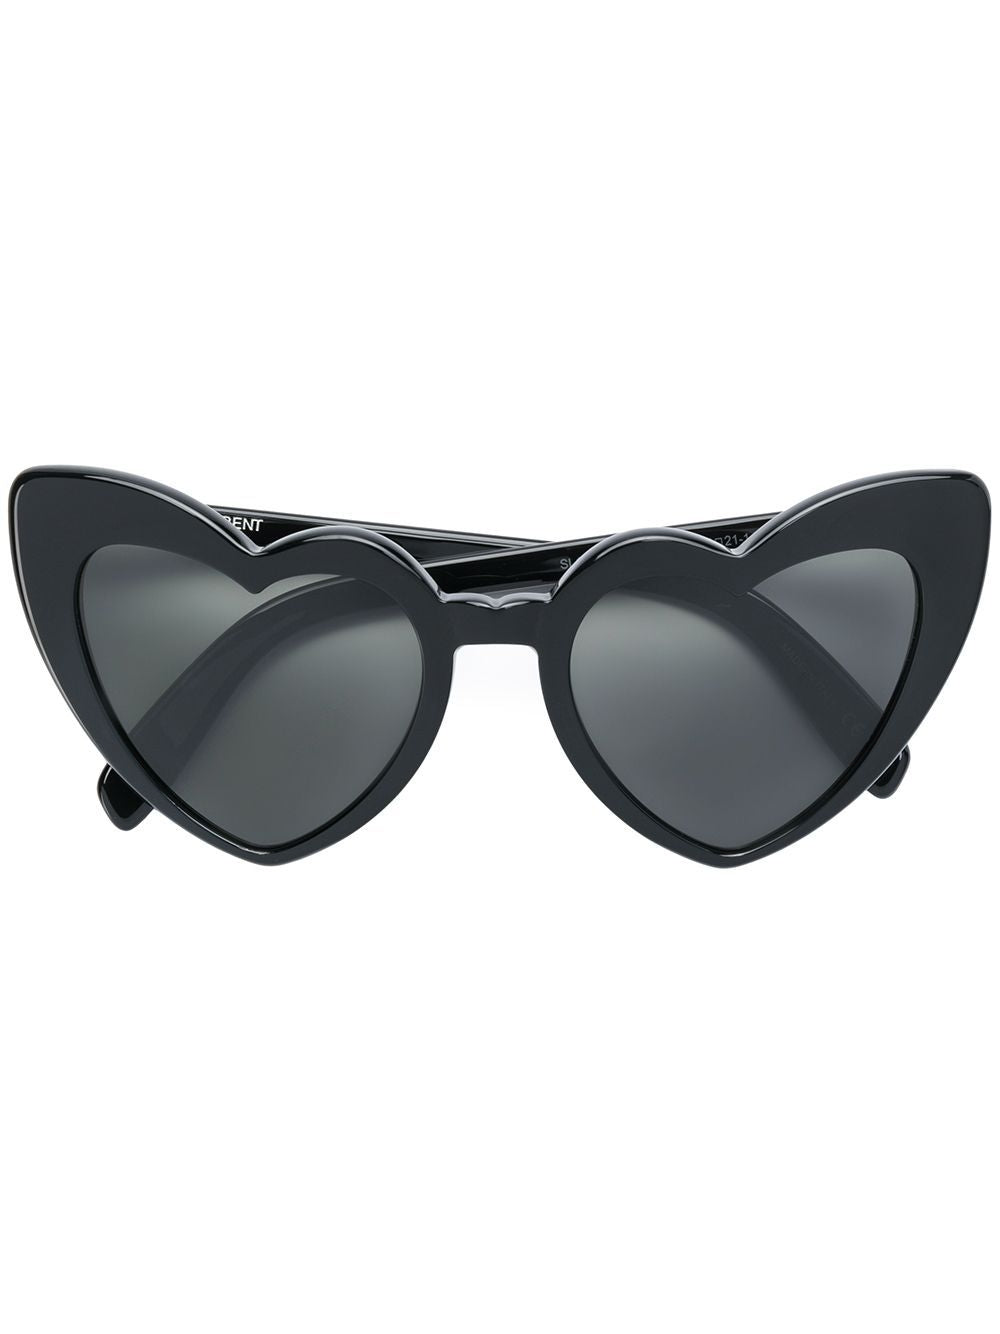 Black LouLou Heart-Shaped Sunglasses